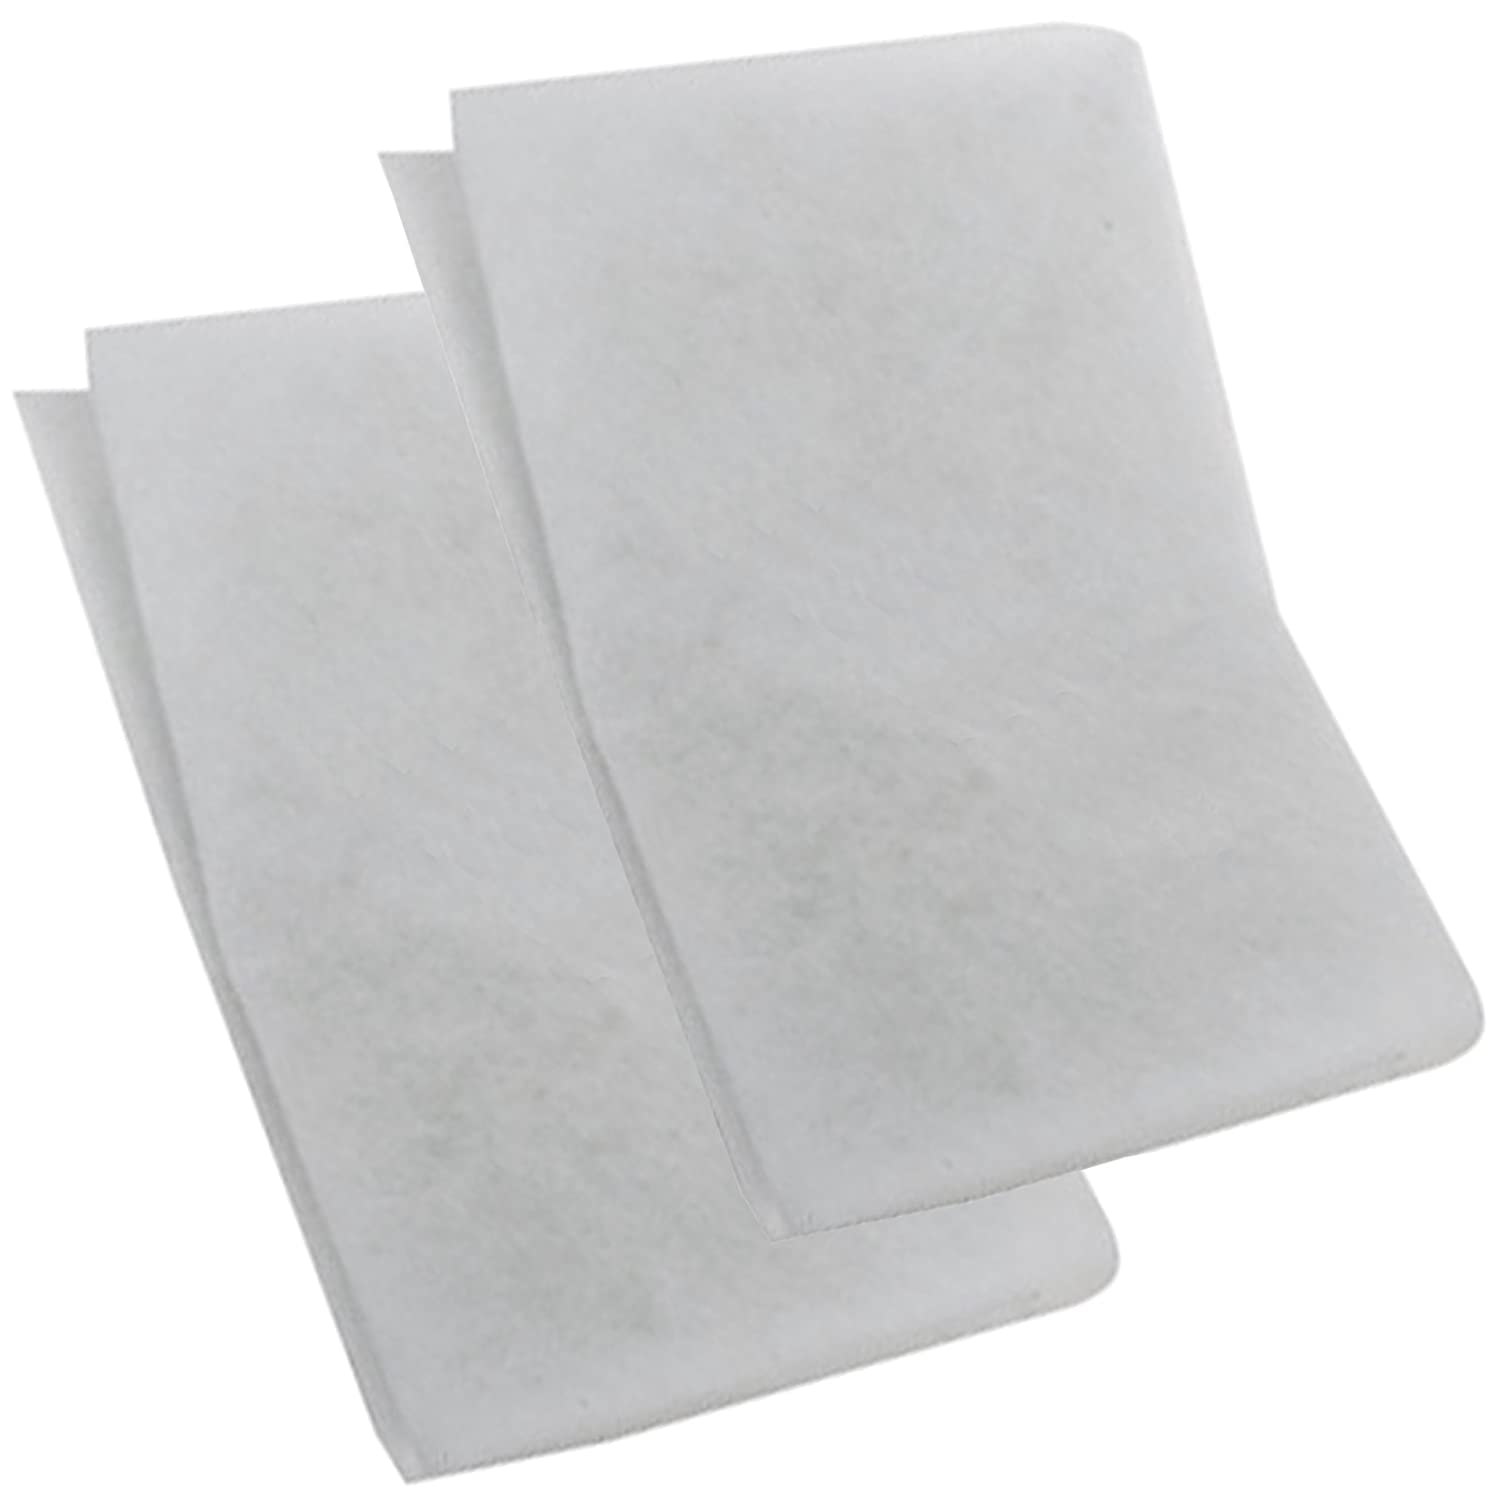 SPARES2GO Grease Filter Paper for Howdens Lamona Cooker Hood Extractor (Pack of 2)